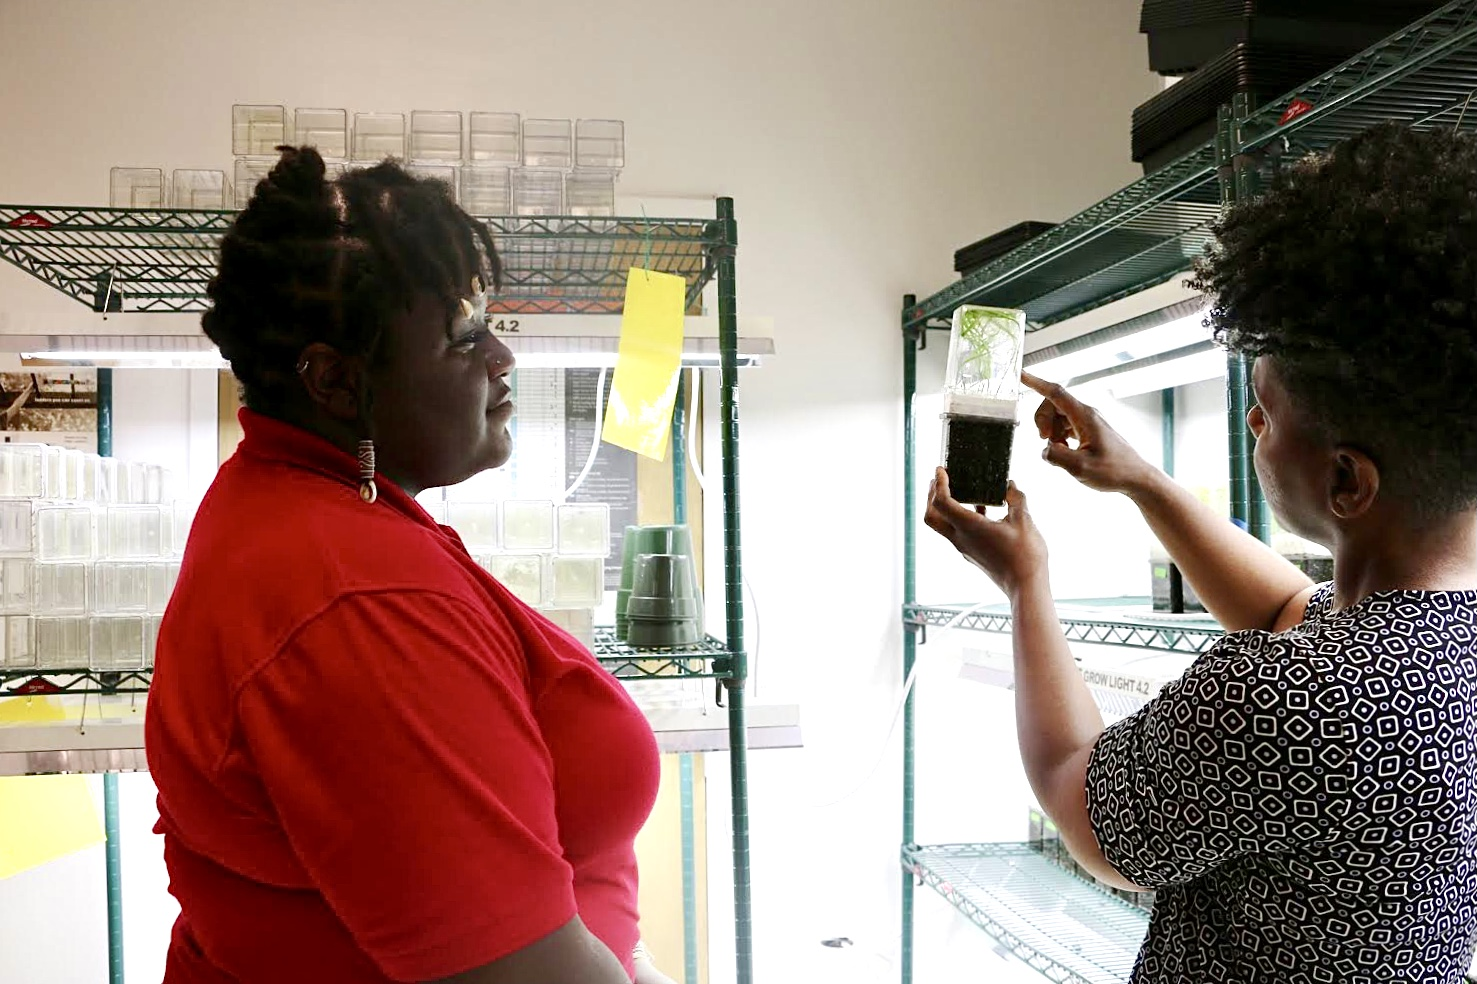 Plant pathology graduate student Makayla Mitchell has received faculty support in UGA's Department of Plant Pathology to create a research project that aligned with her interests.